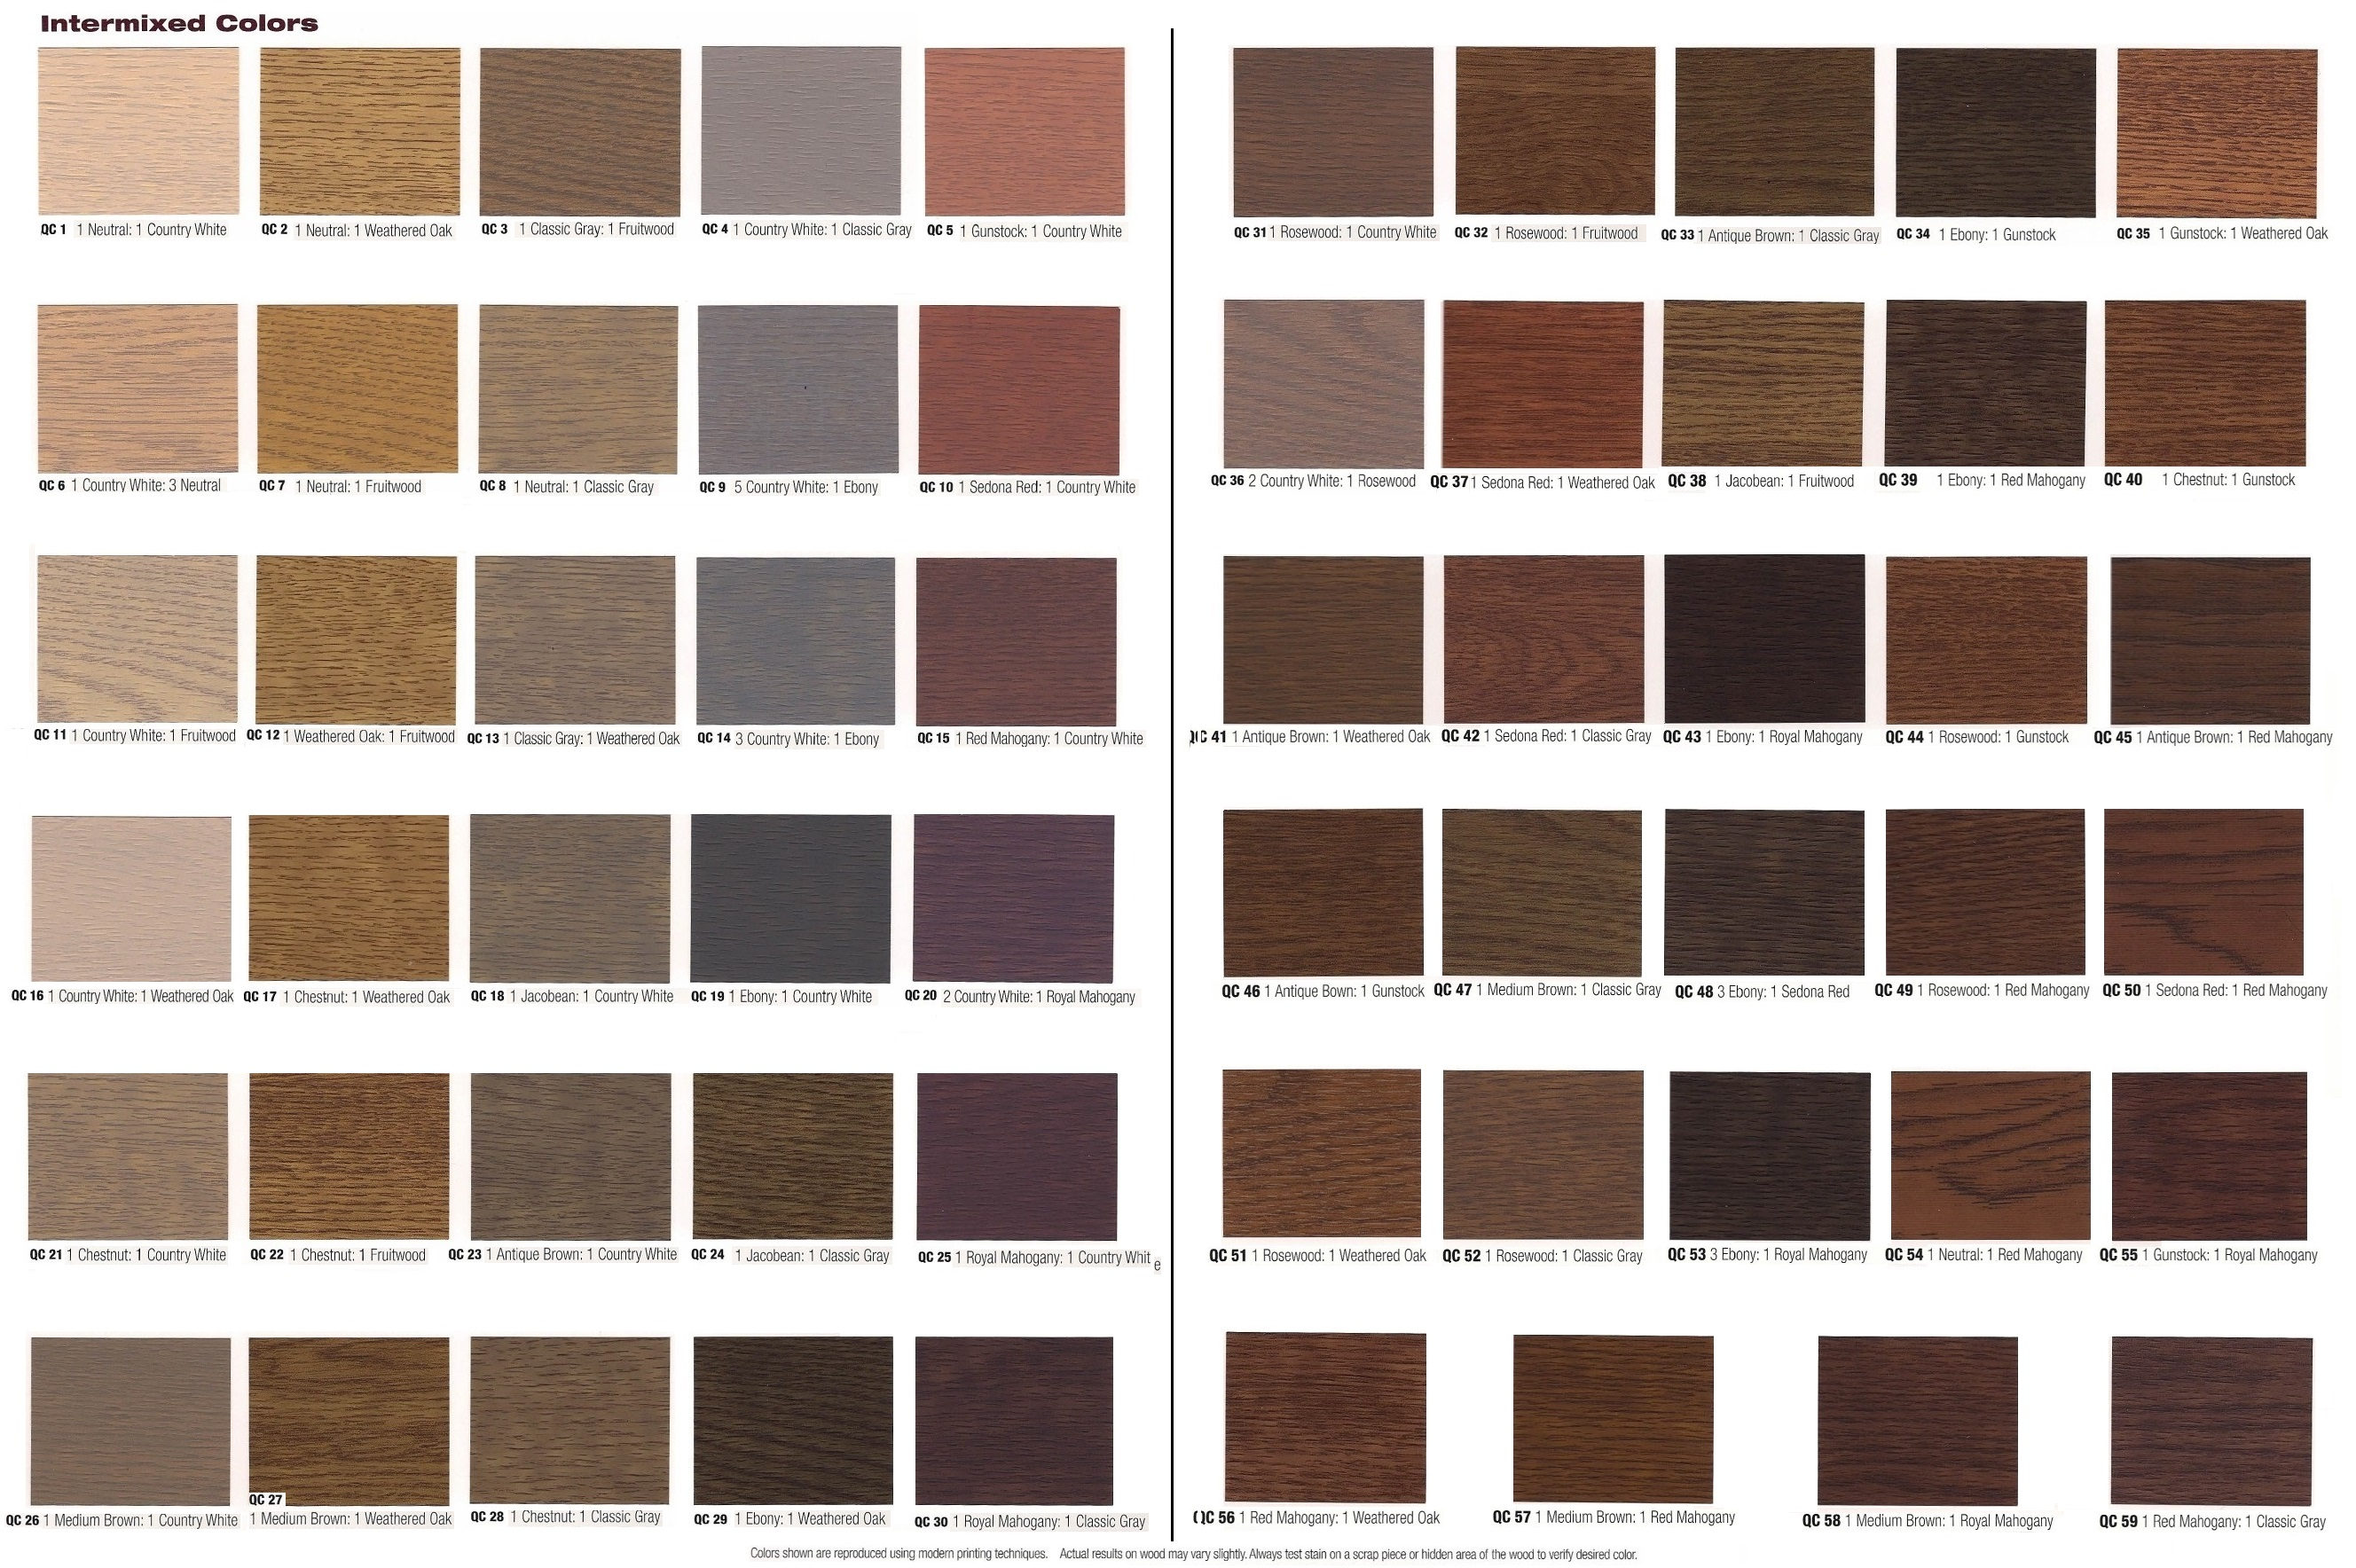 Top 28 dura seal stain colors flooracle top 28 dura for Wood floor colors 2014